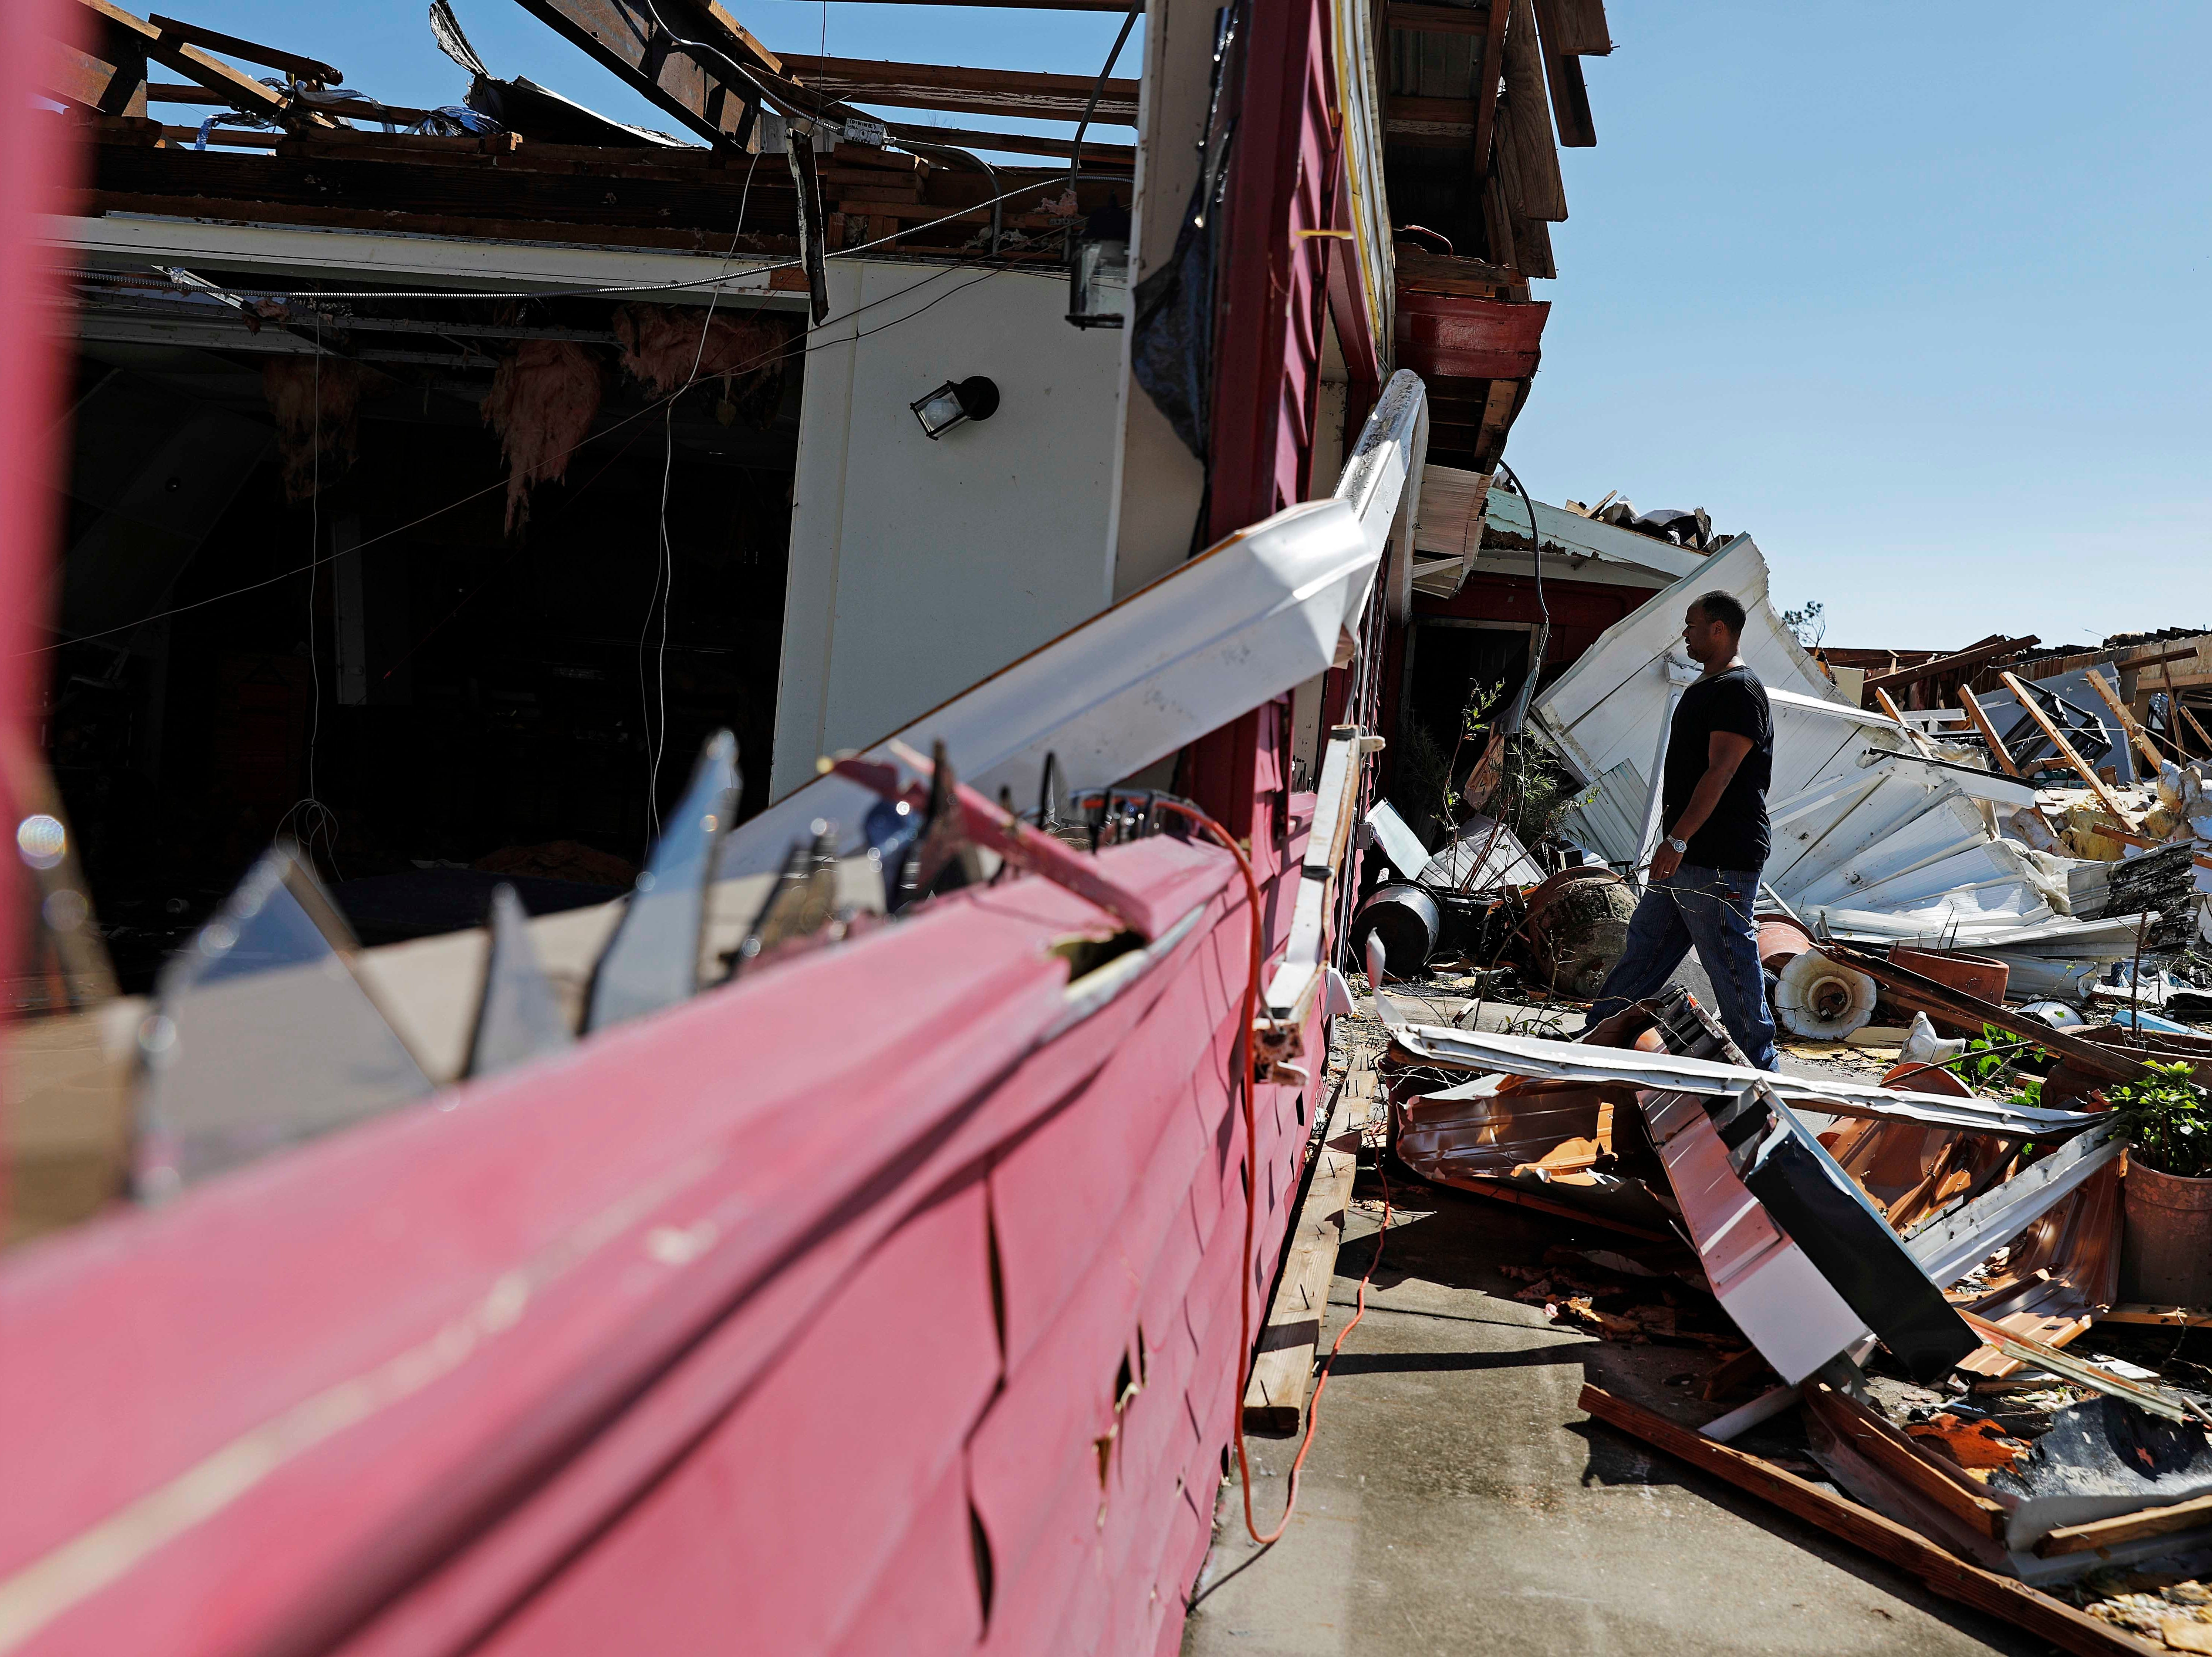 Matthew Washington walks in to salvage items from the damaged Thai restaurant he owns with his wife in the aftermath of hurricane Michael in Callaway, Fla., Thursday, Oct. 11, 2018. (AP Photo/David Goldman)